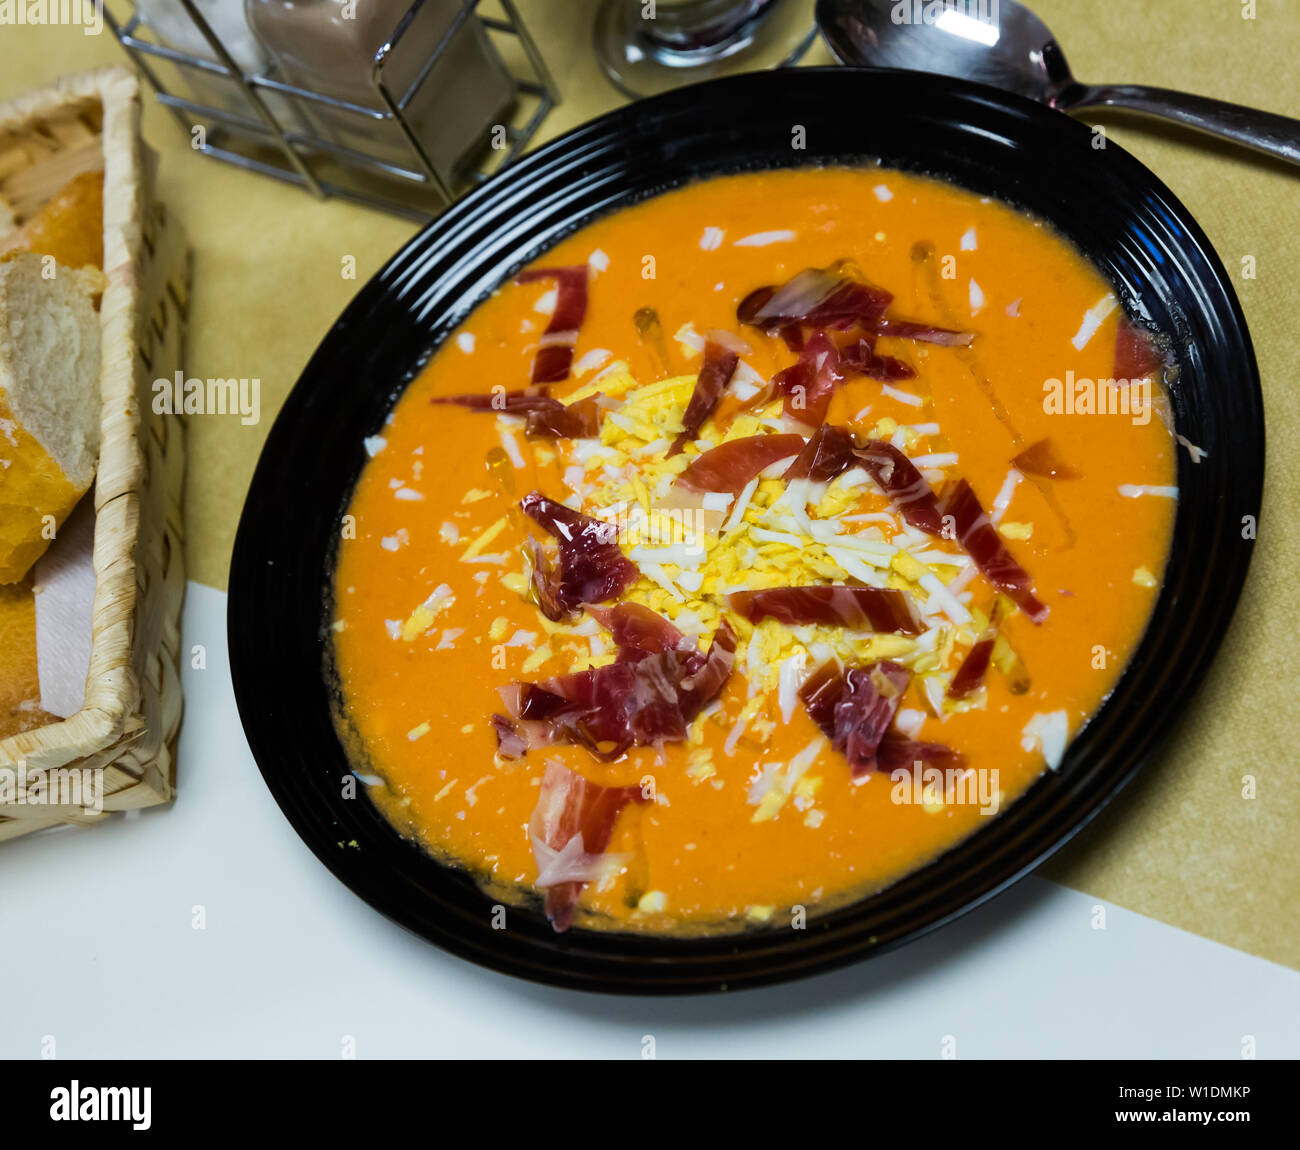 Traditional Spanish cold soup Salmorejo from tomatoes with bread, garlic and olive oil served with jamon and boiled egg - Stock Image